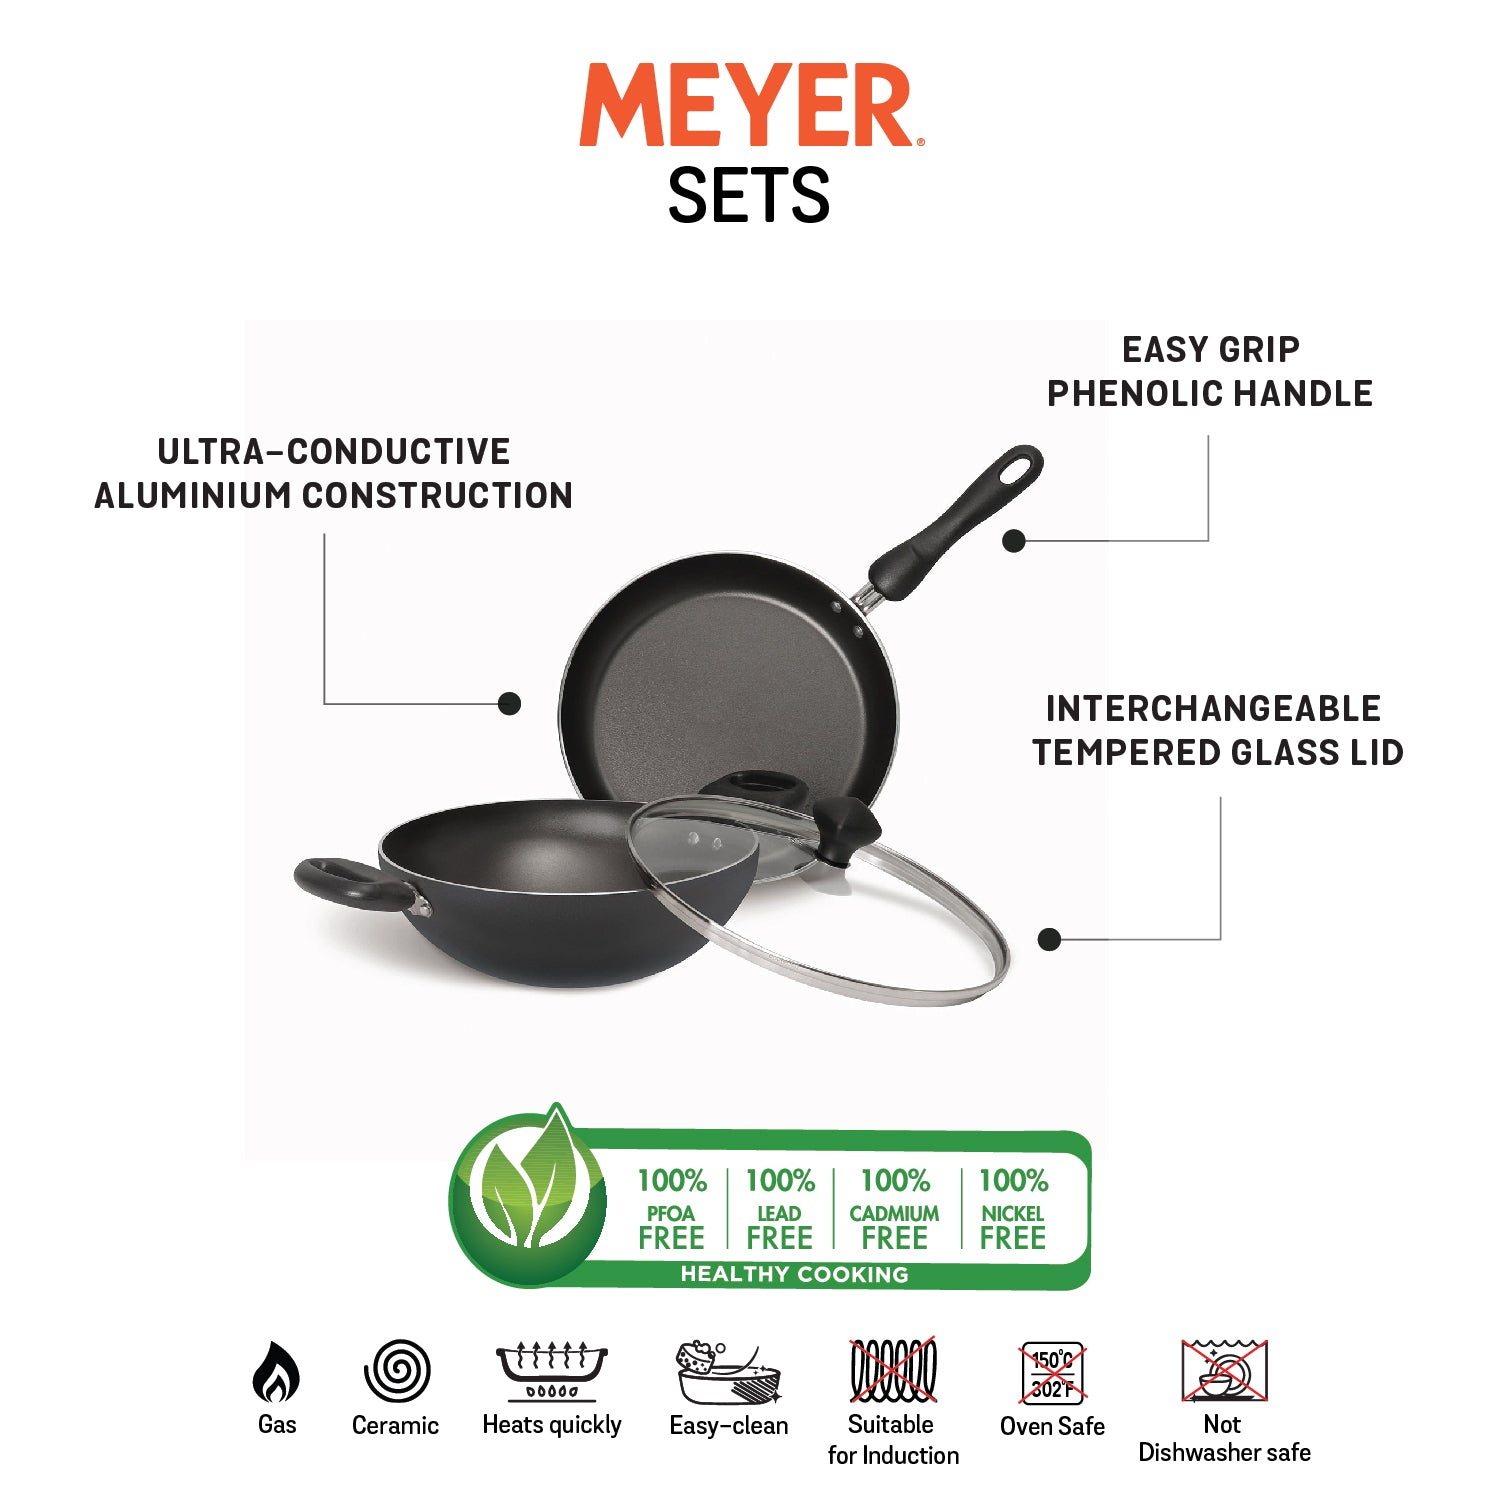 Meyer Non-Stick 3pcs Set, 24cm Frypan + 24cm Kadai with Interchangeable Lid - Pots and Pans